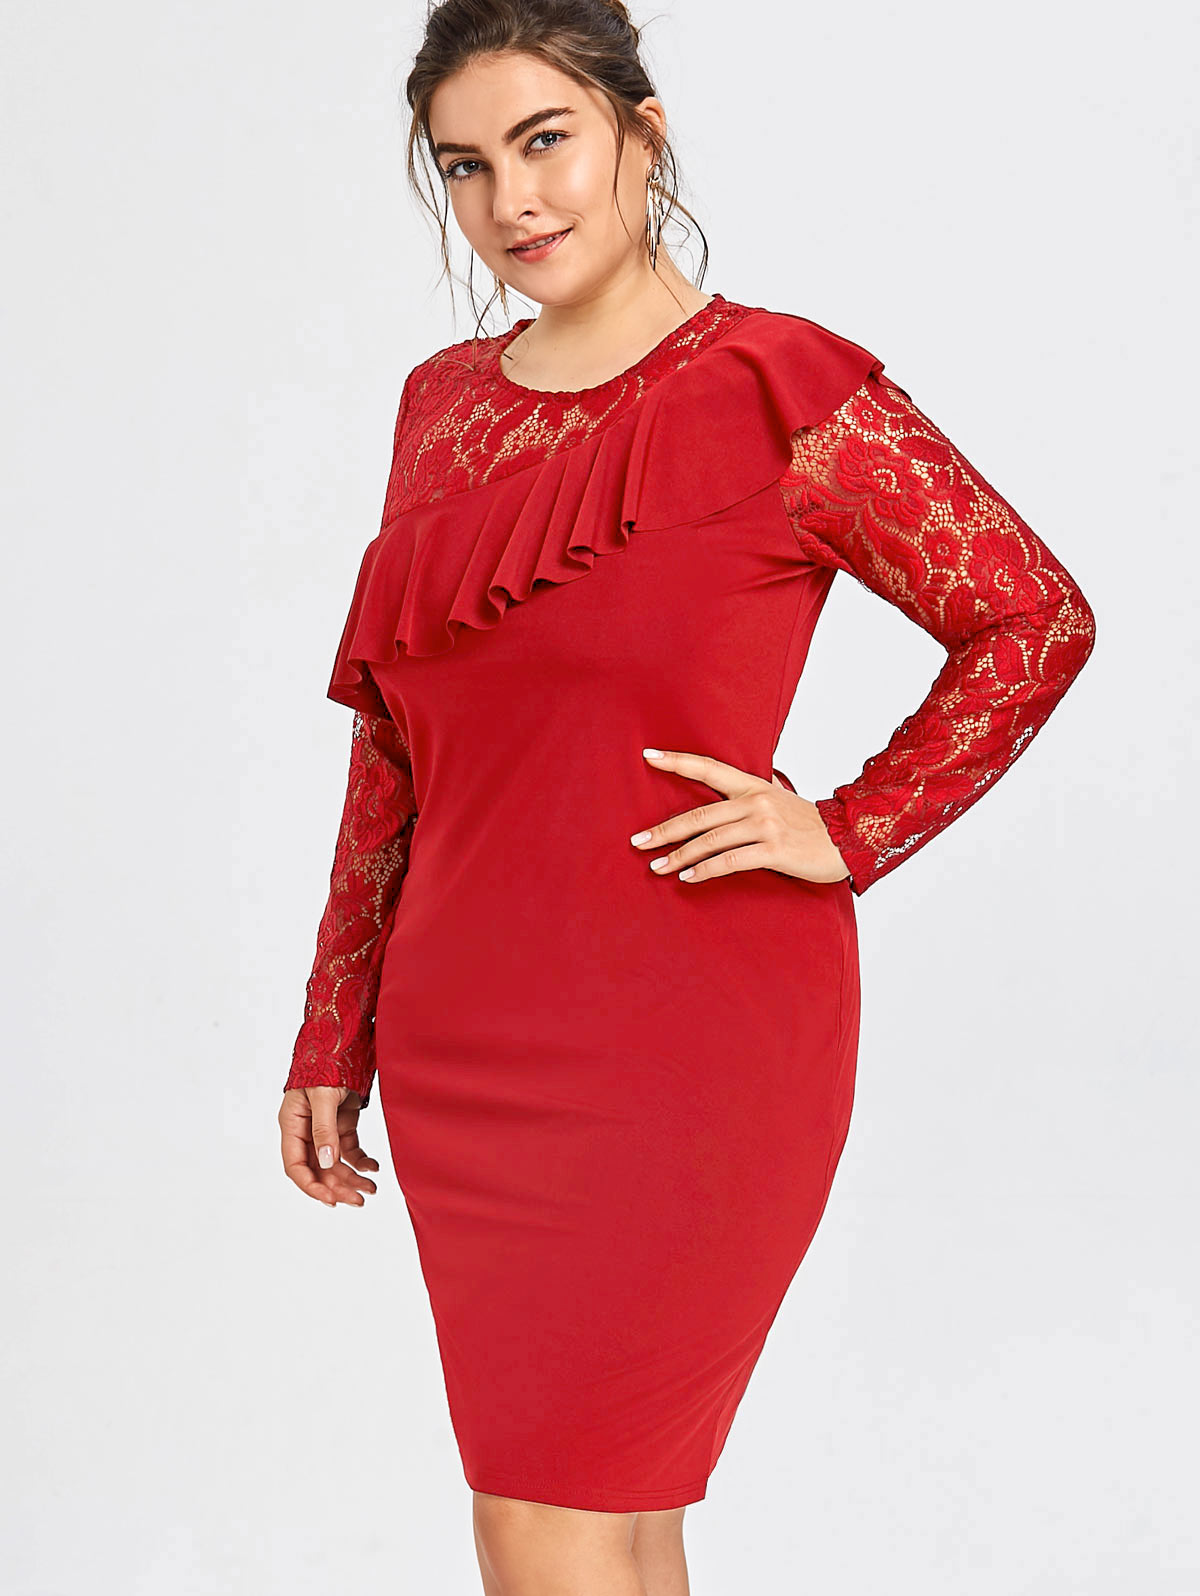 Gamiss New 2018 Fashion Dresses Plus Size 3XL 6XL Lace Insert Ruffle Semi  Formal Dress Women Sexy Bobycon Party Dress Vestidos-in Dresses from  Women s ... 17ea832a74ab